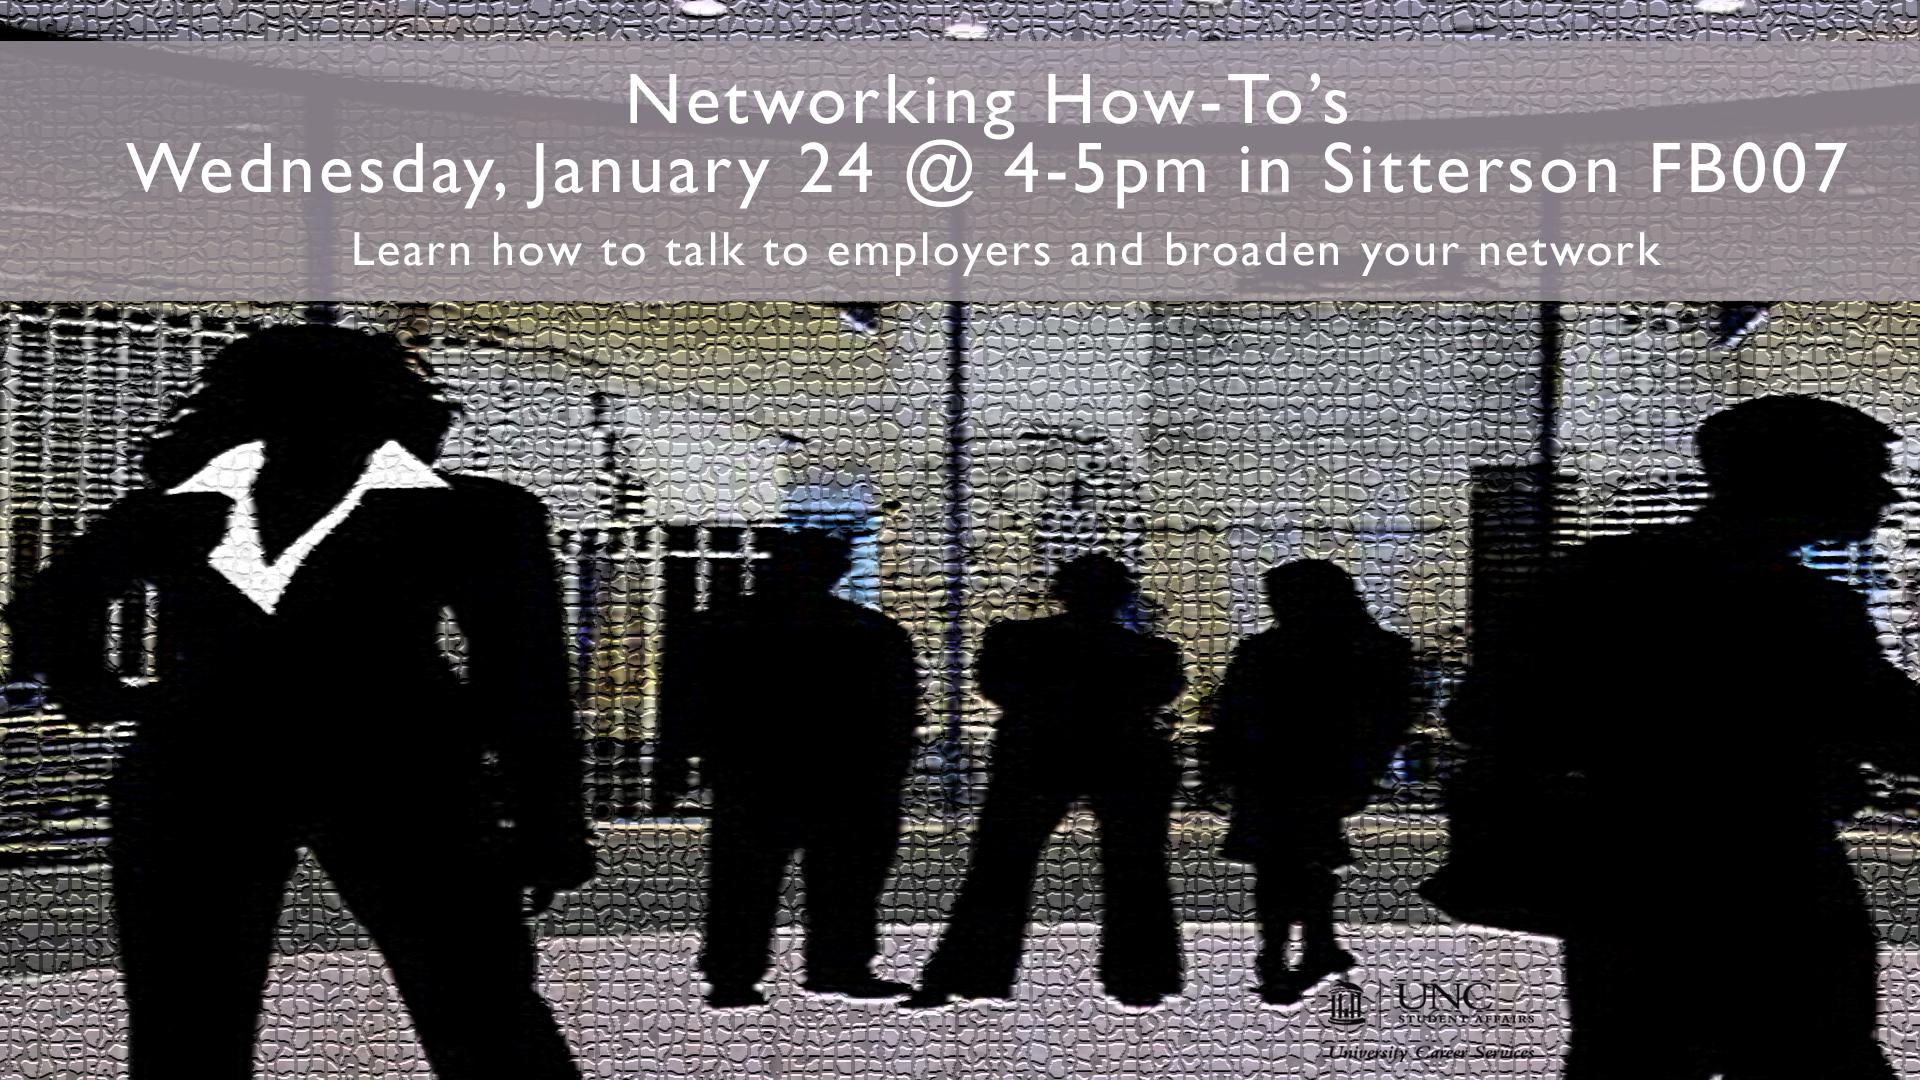 Networking How-To's